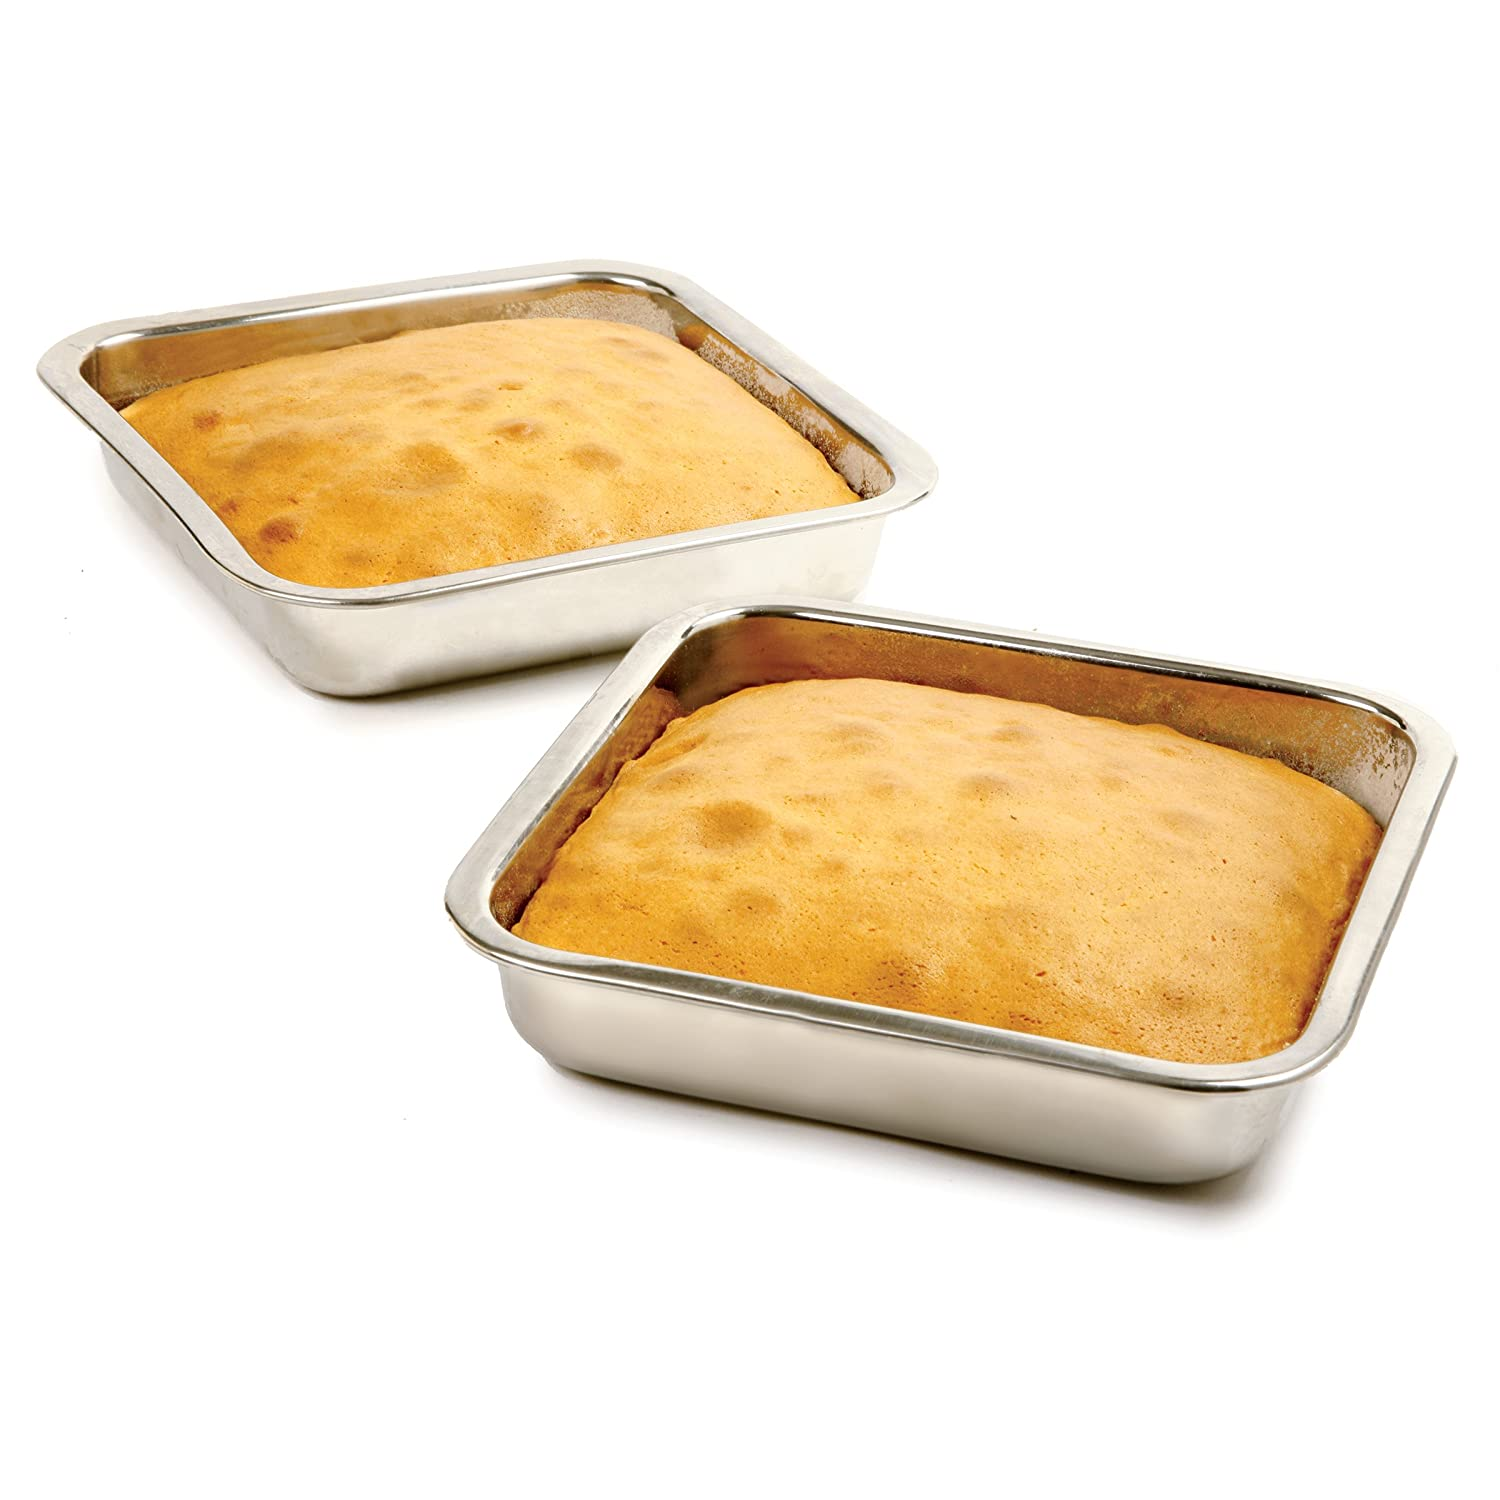 Amazon.com: Norpro 7.5-Inch Stainless Steel Cake Pan, Square ...